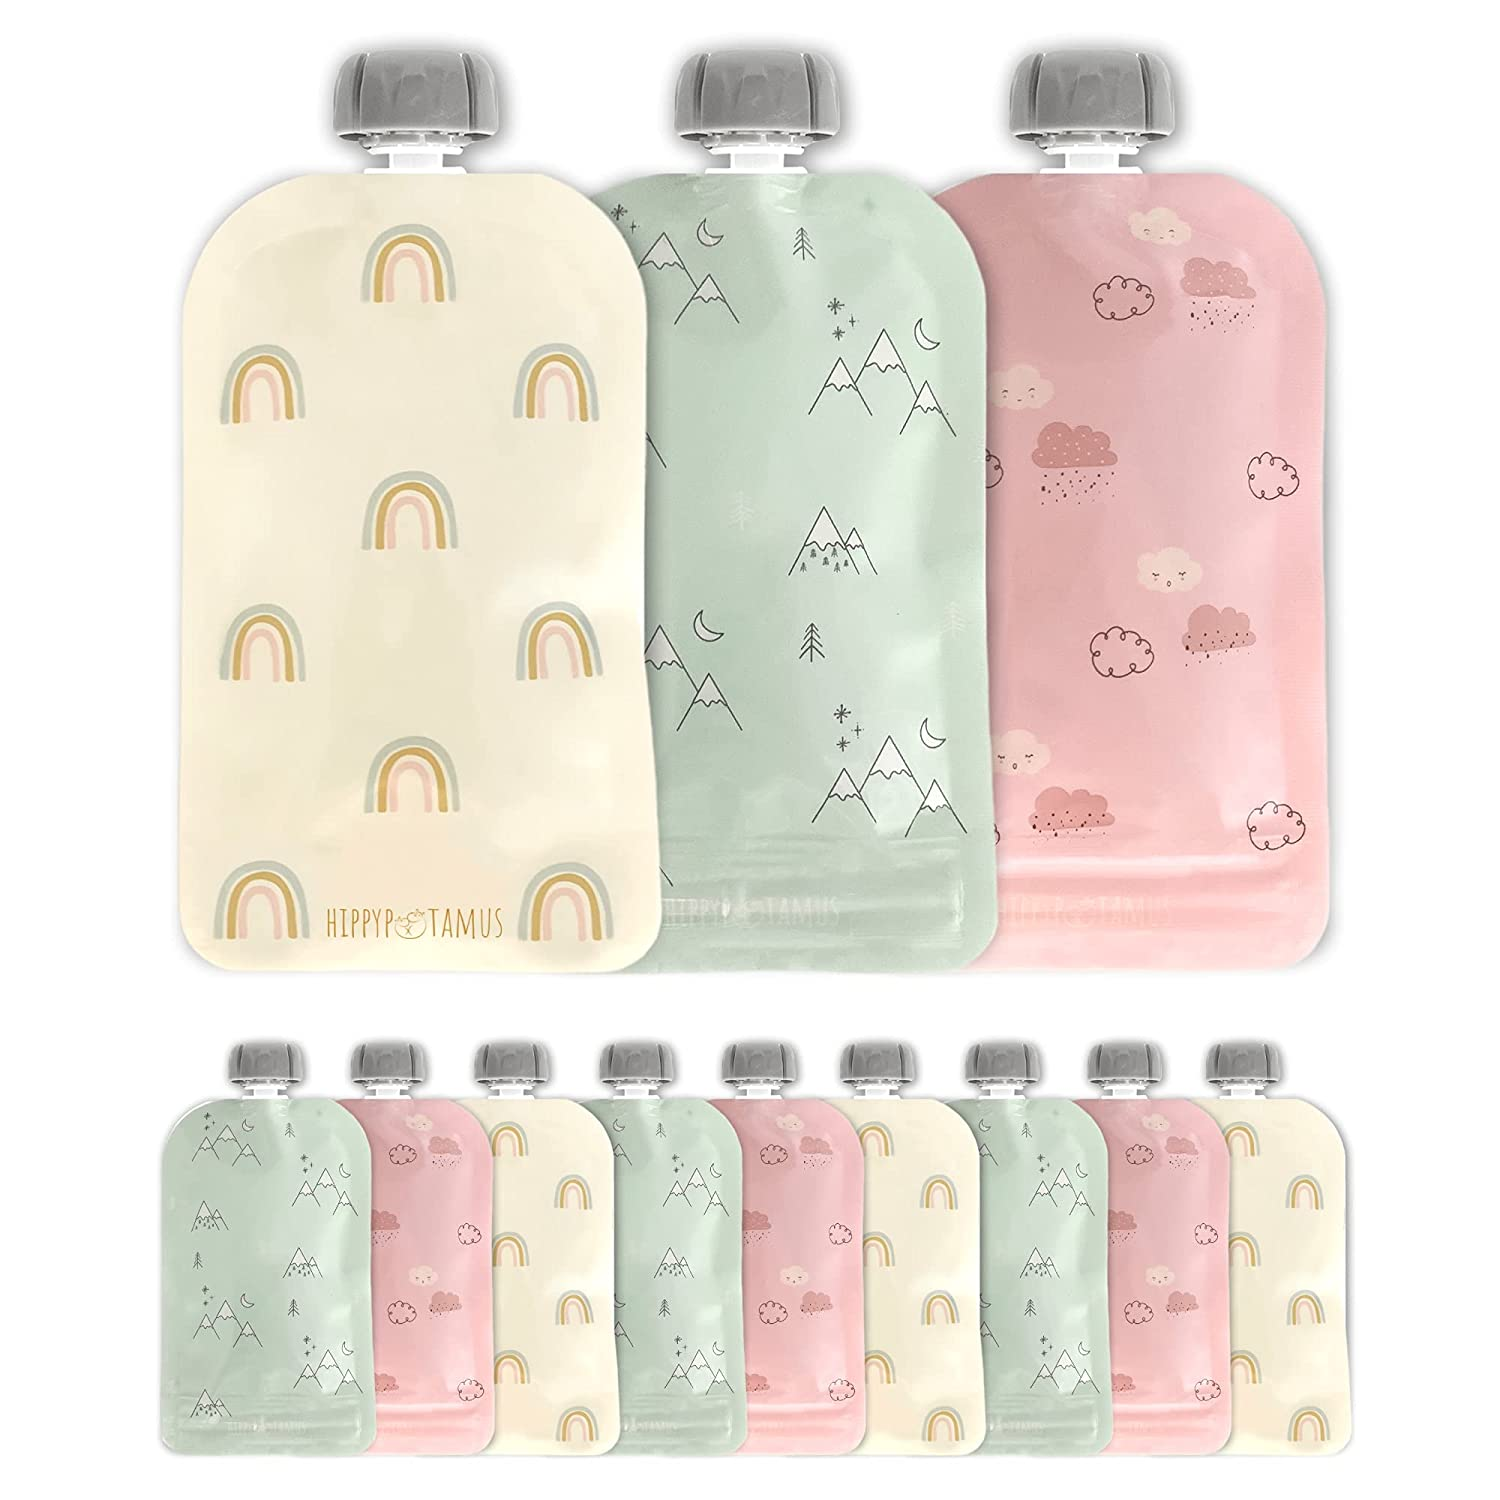 Hippypotamus Reusable Baby Food Pouches - 12 Pack - Baby Food Storage - Pouches Toddler - Refillable Squeeze Pouch for Kids (Rainbow/Mountain/Cloud)